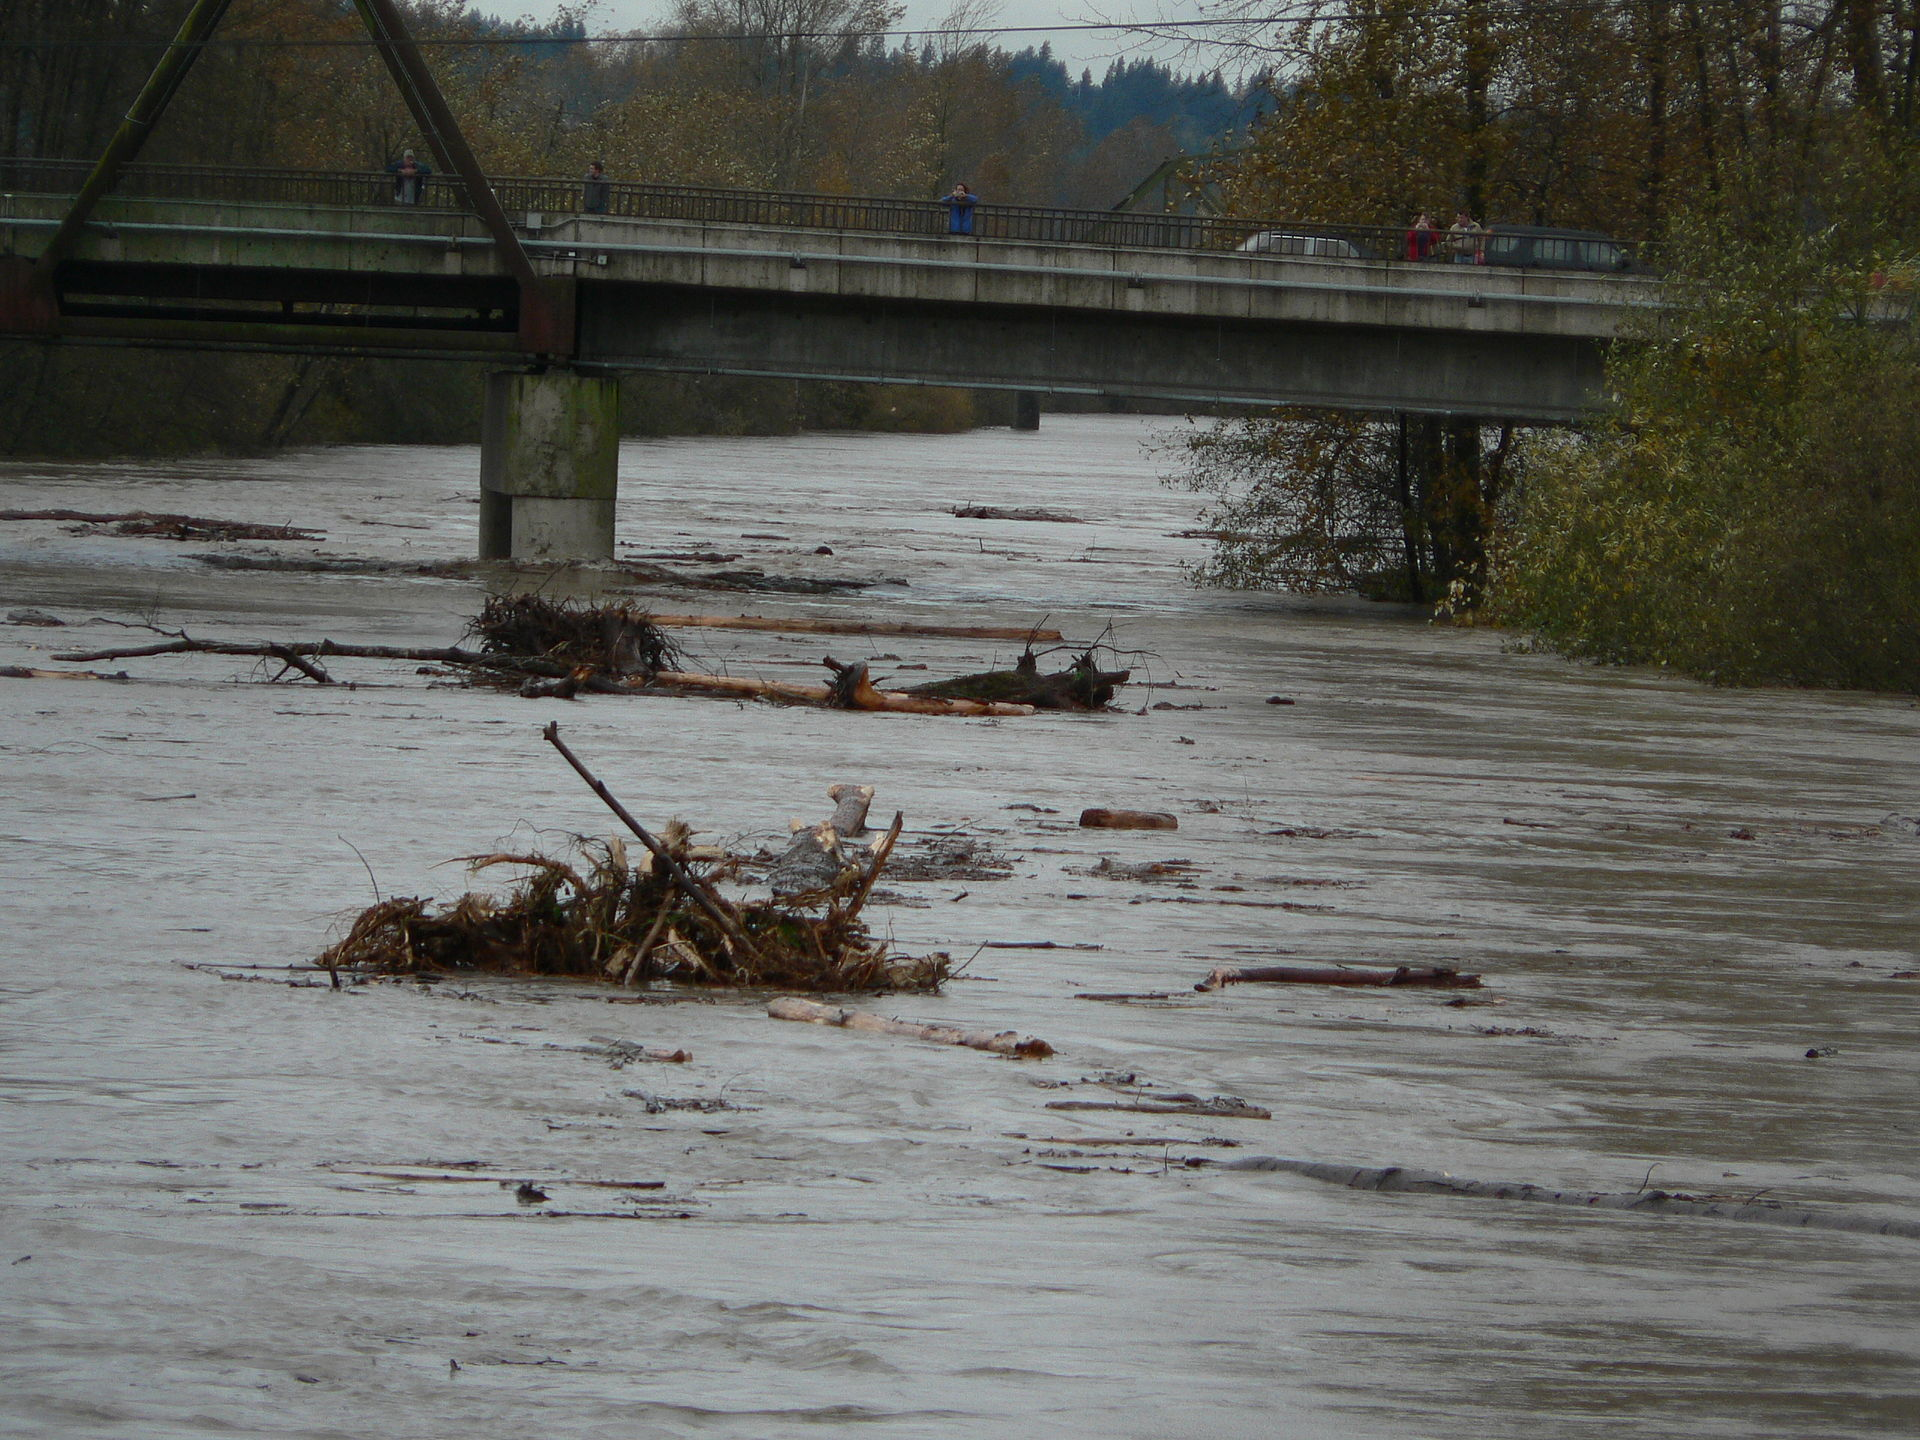 Climate change a threat to native fish save the trout for Snoqualmie river fishing